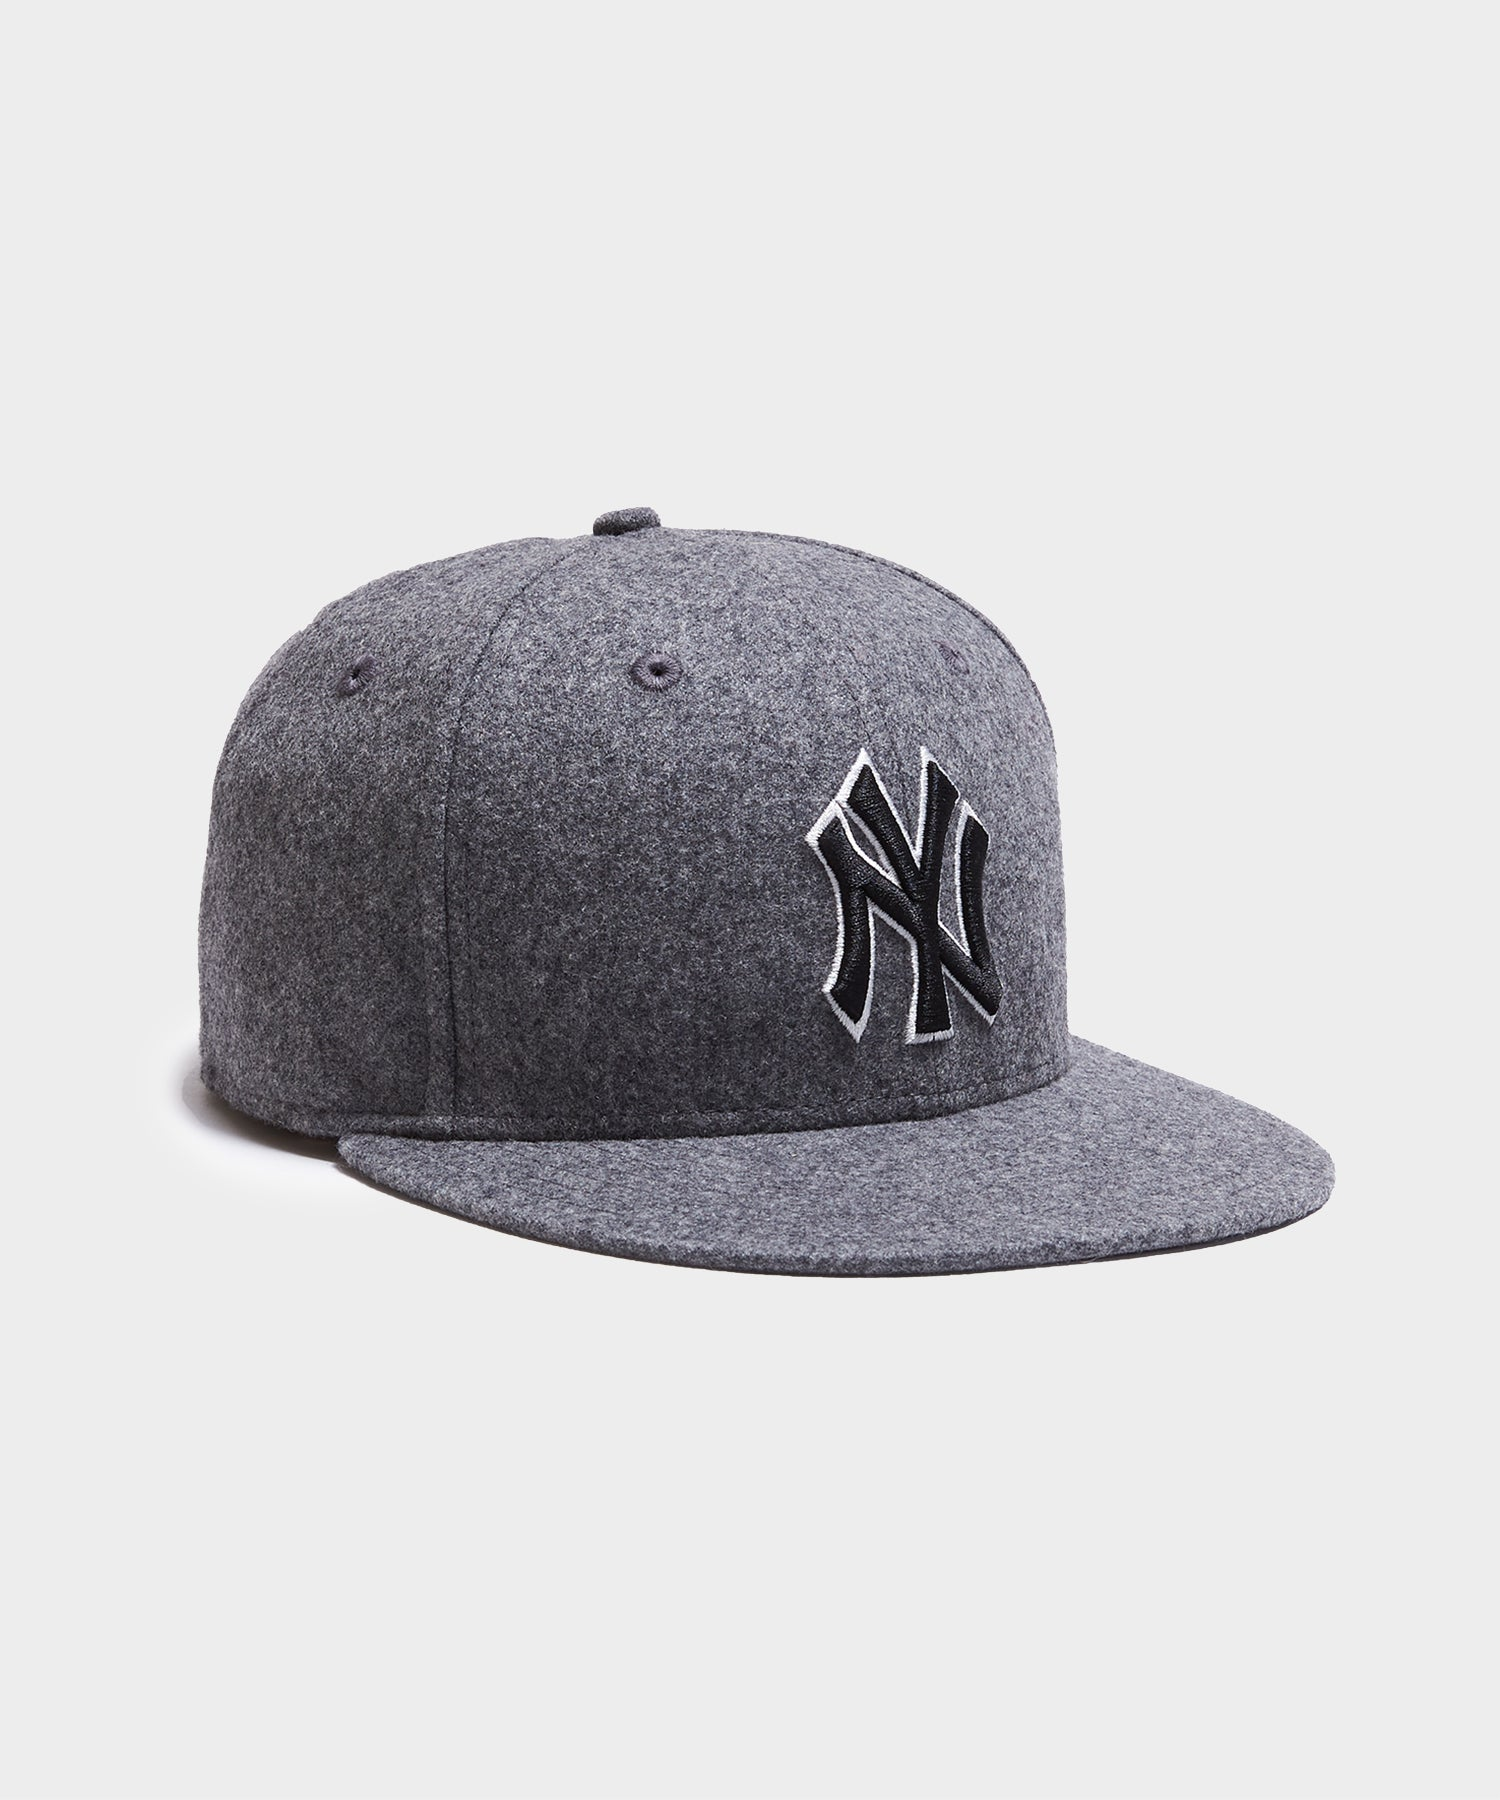 Todd Snyder + New Era New York Pack Yankees